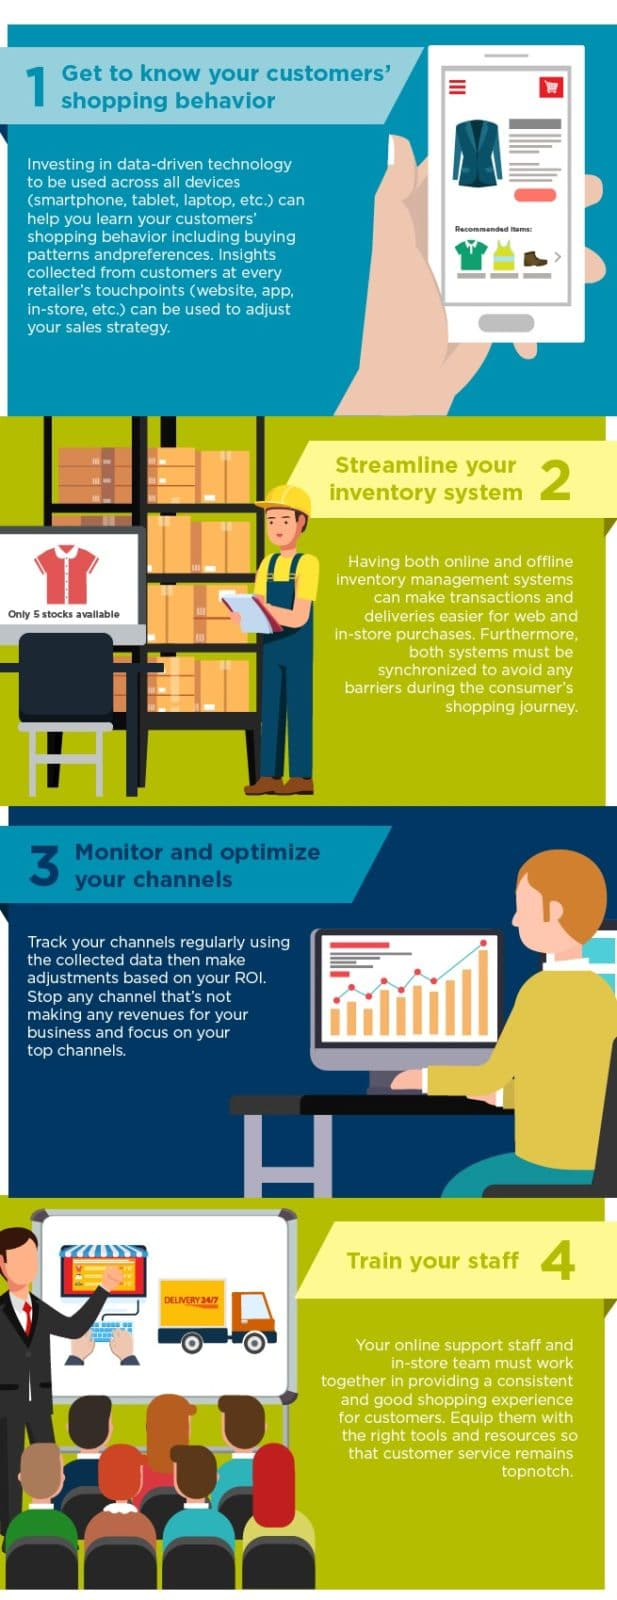 4-ways-to-integrate-omnichannel-retailing-in-your-sales-strategy-3-617x1600